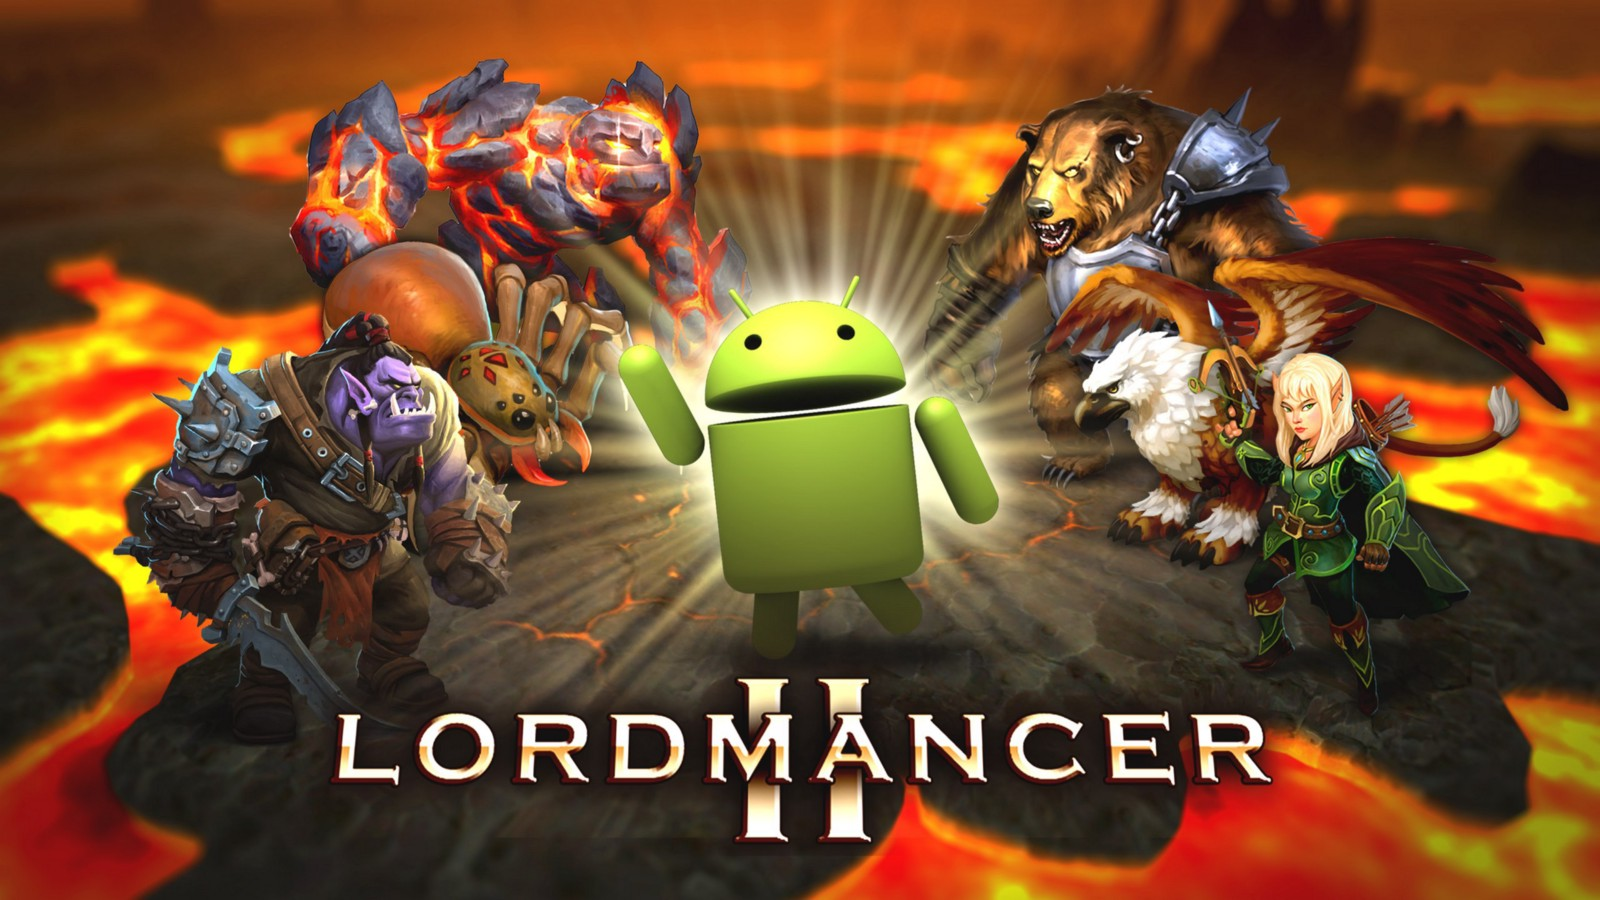 Mobile MMORPG Lordmancer II is officially launched on